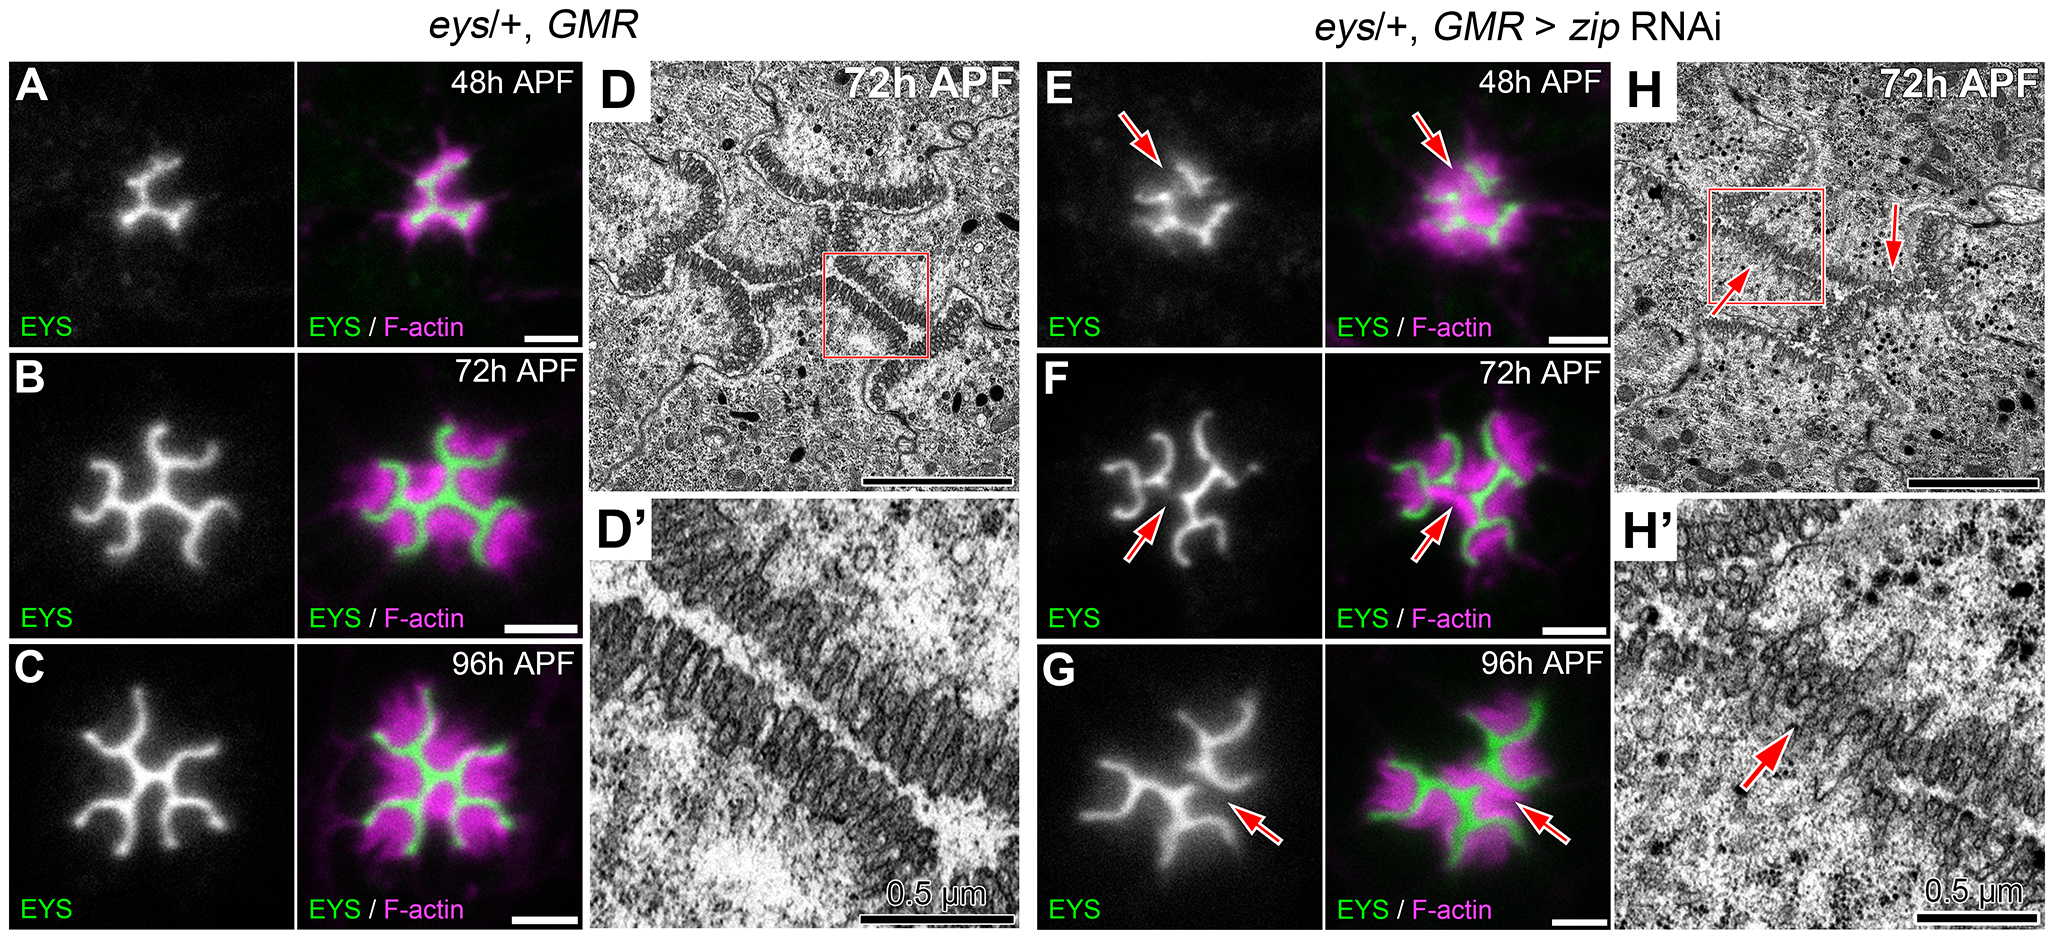 Defects in apical membrane separation are detected early and maintained throughout development.